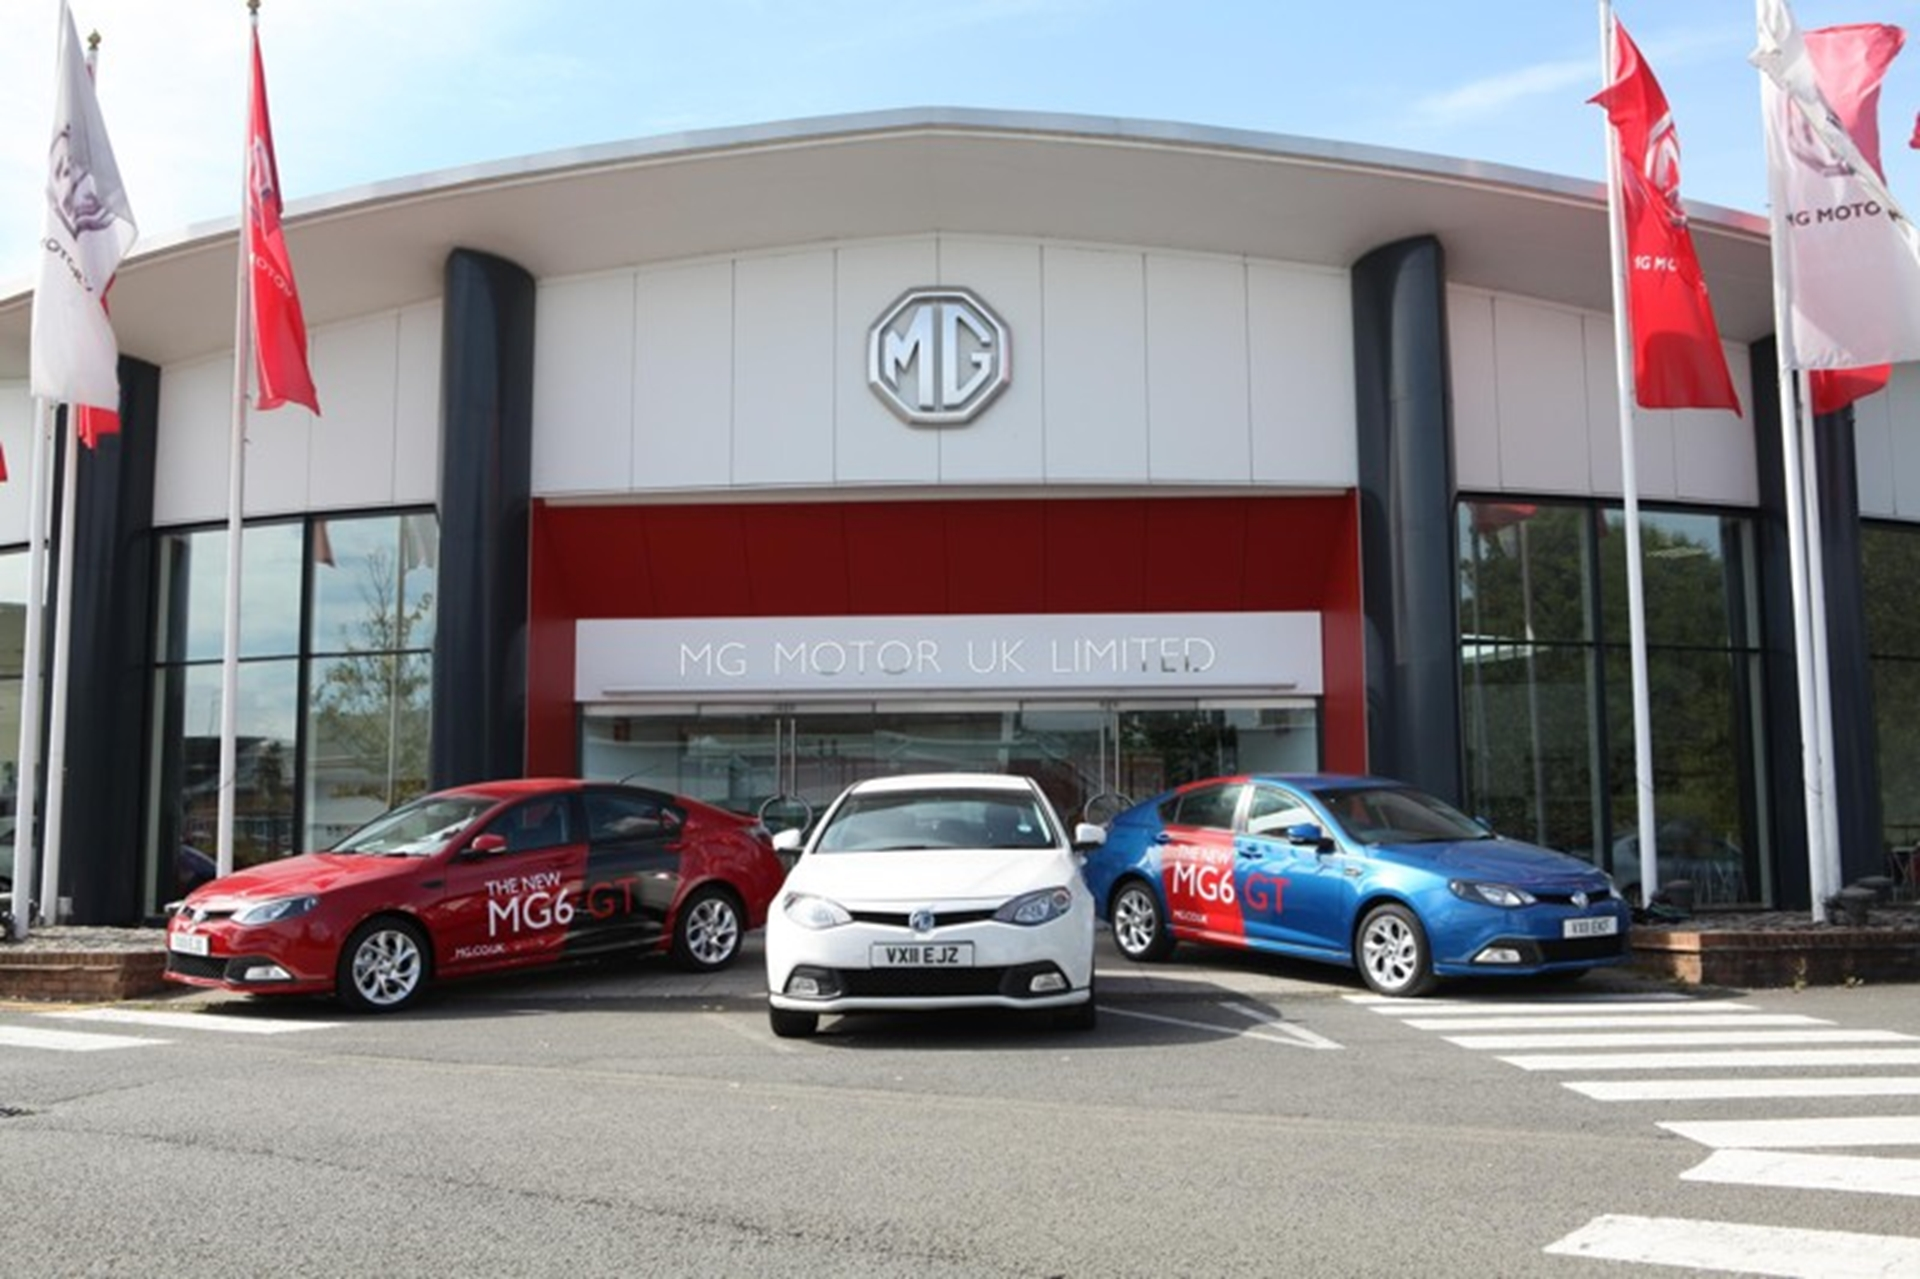 mg-motor-uk-limited